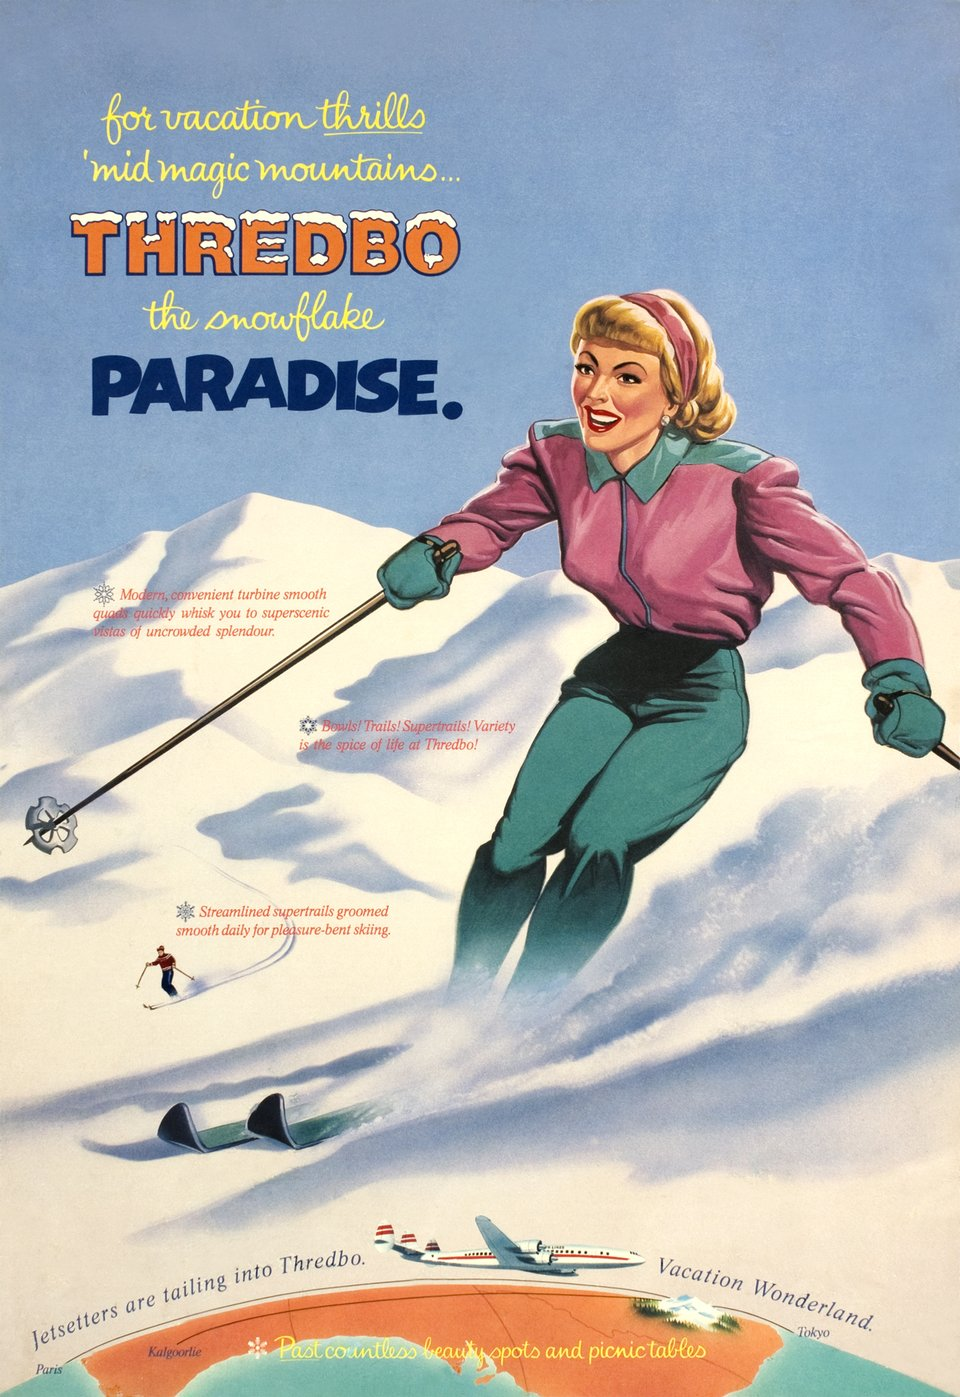 For vacation thrills 'mid magic mountains Thredbo for the snowflake Paradise – Affiche ancienne –  ANONYME – 1952